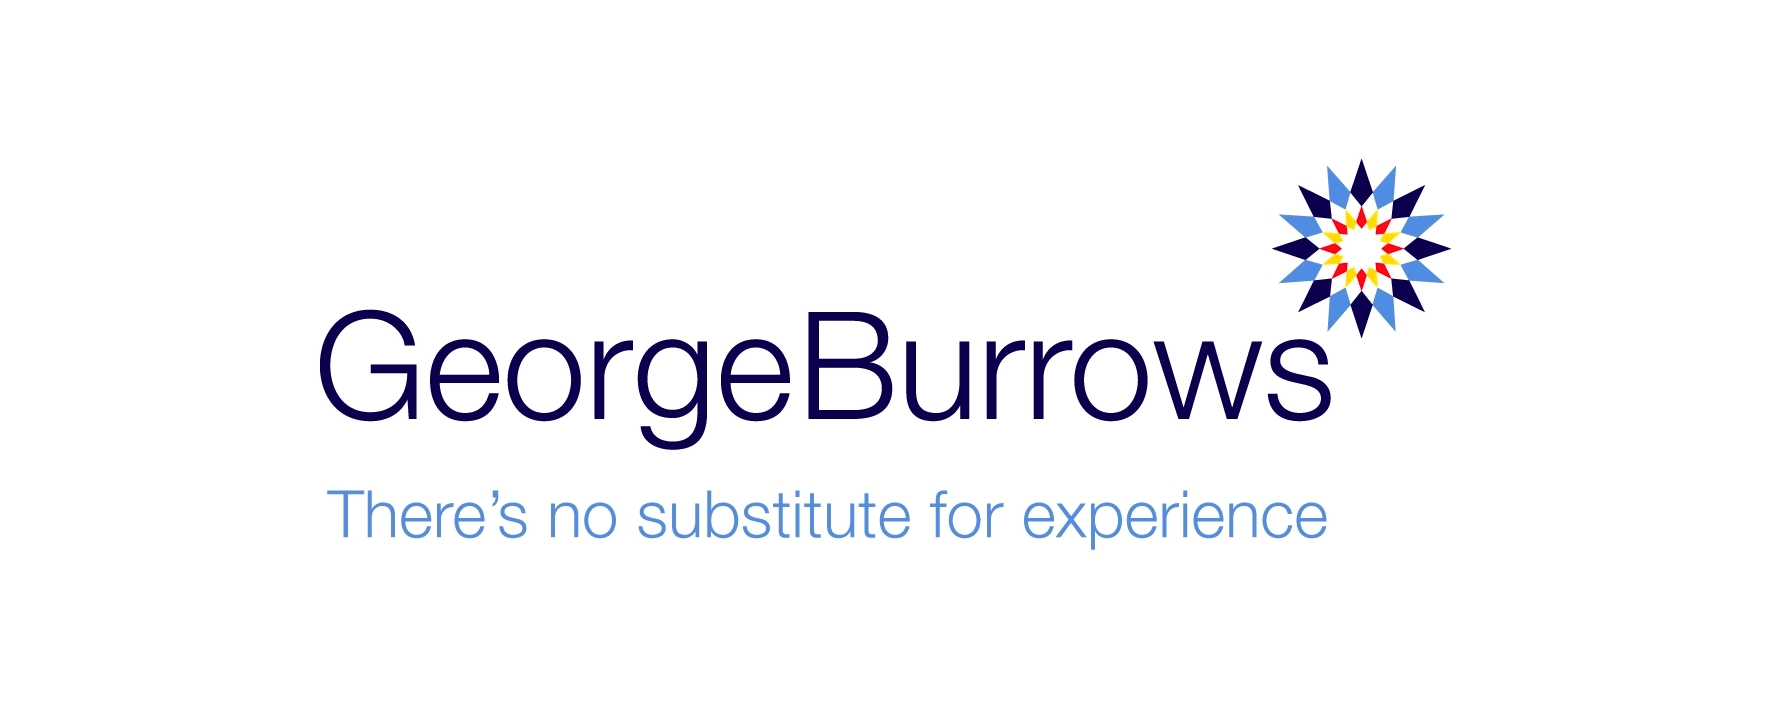 George Burrows